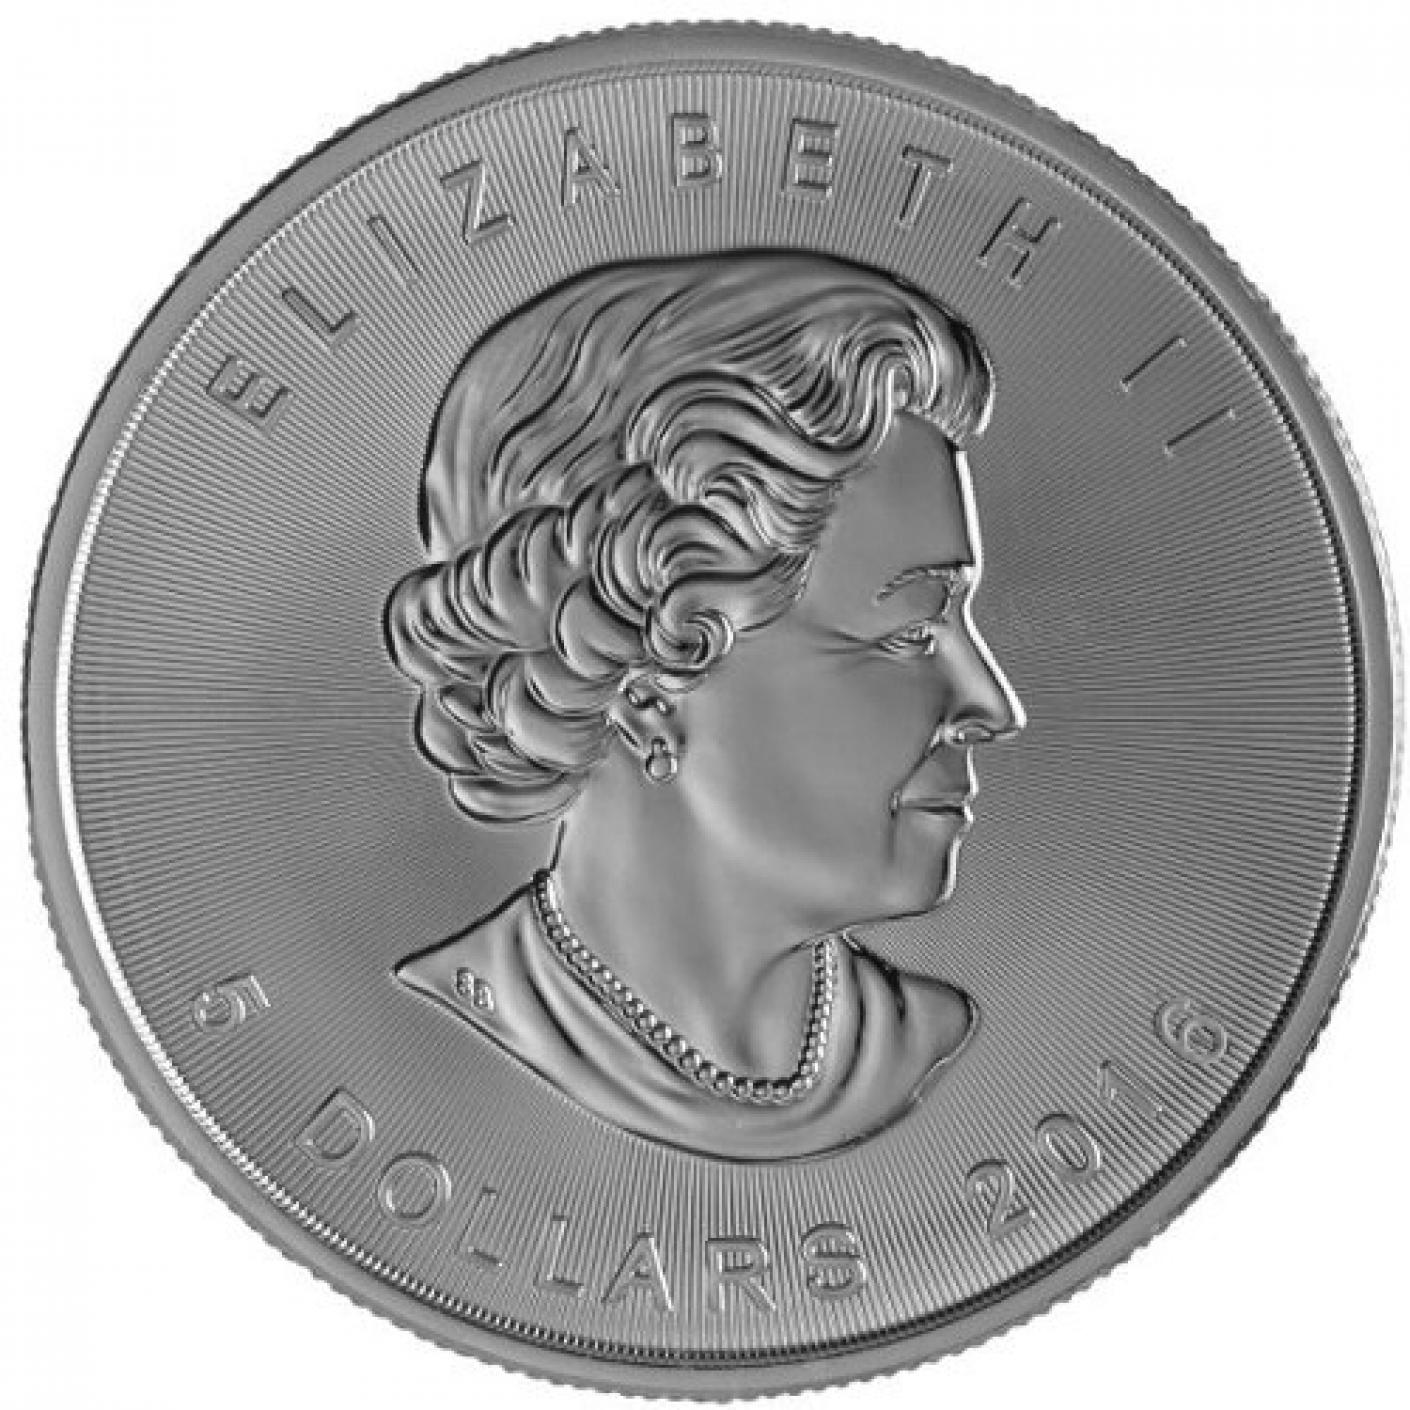 2016Canadian Maple Leaf silver coins